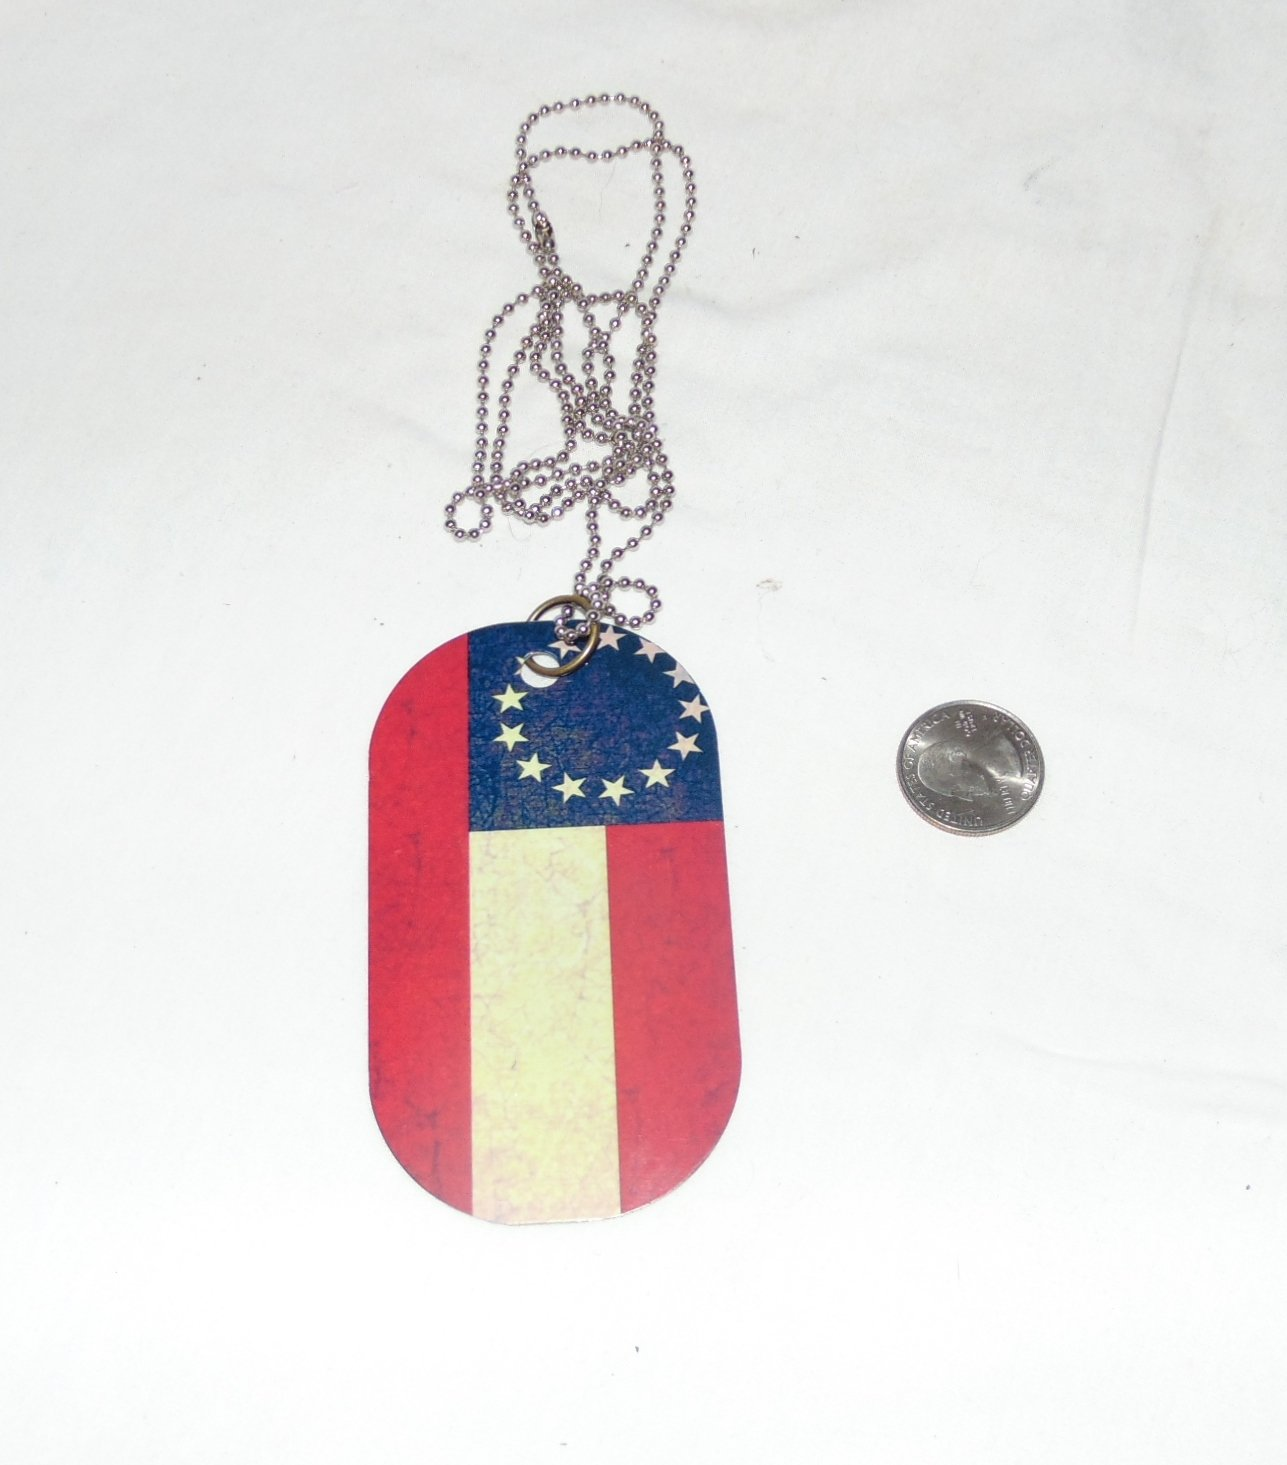 """13 STAR CSA oversized dog tag necklace rear view mirror decoration 4 x 2.25"""""""